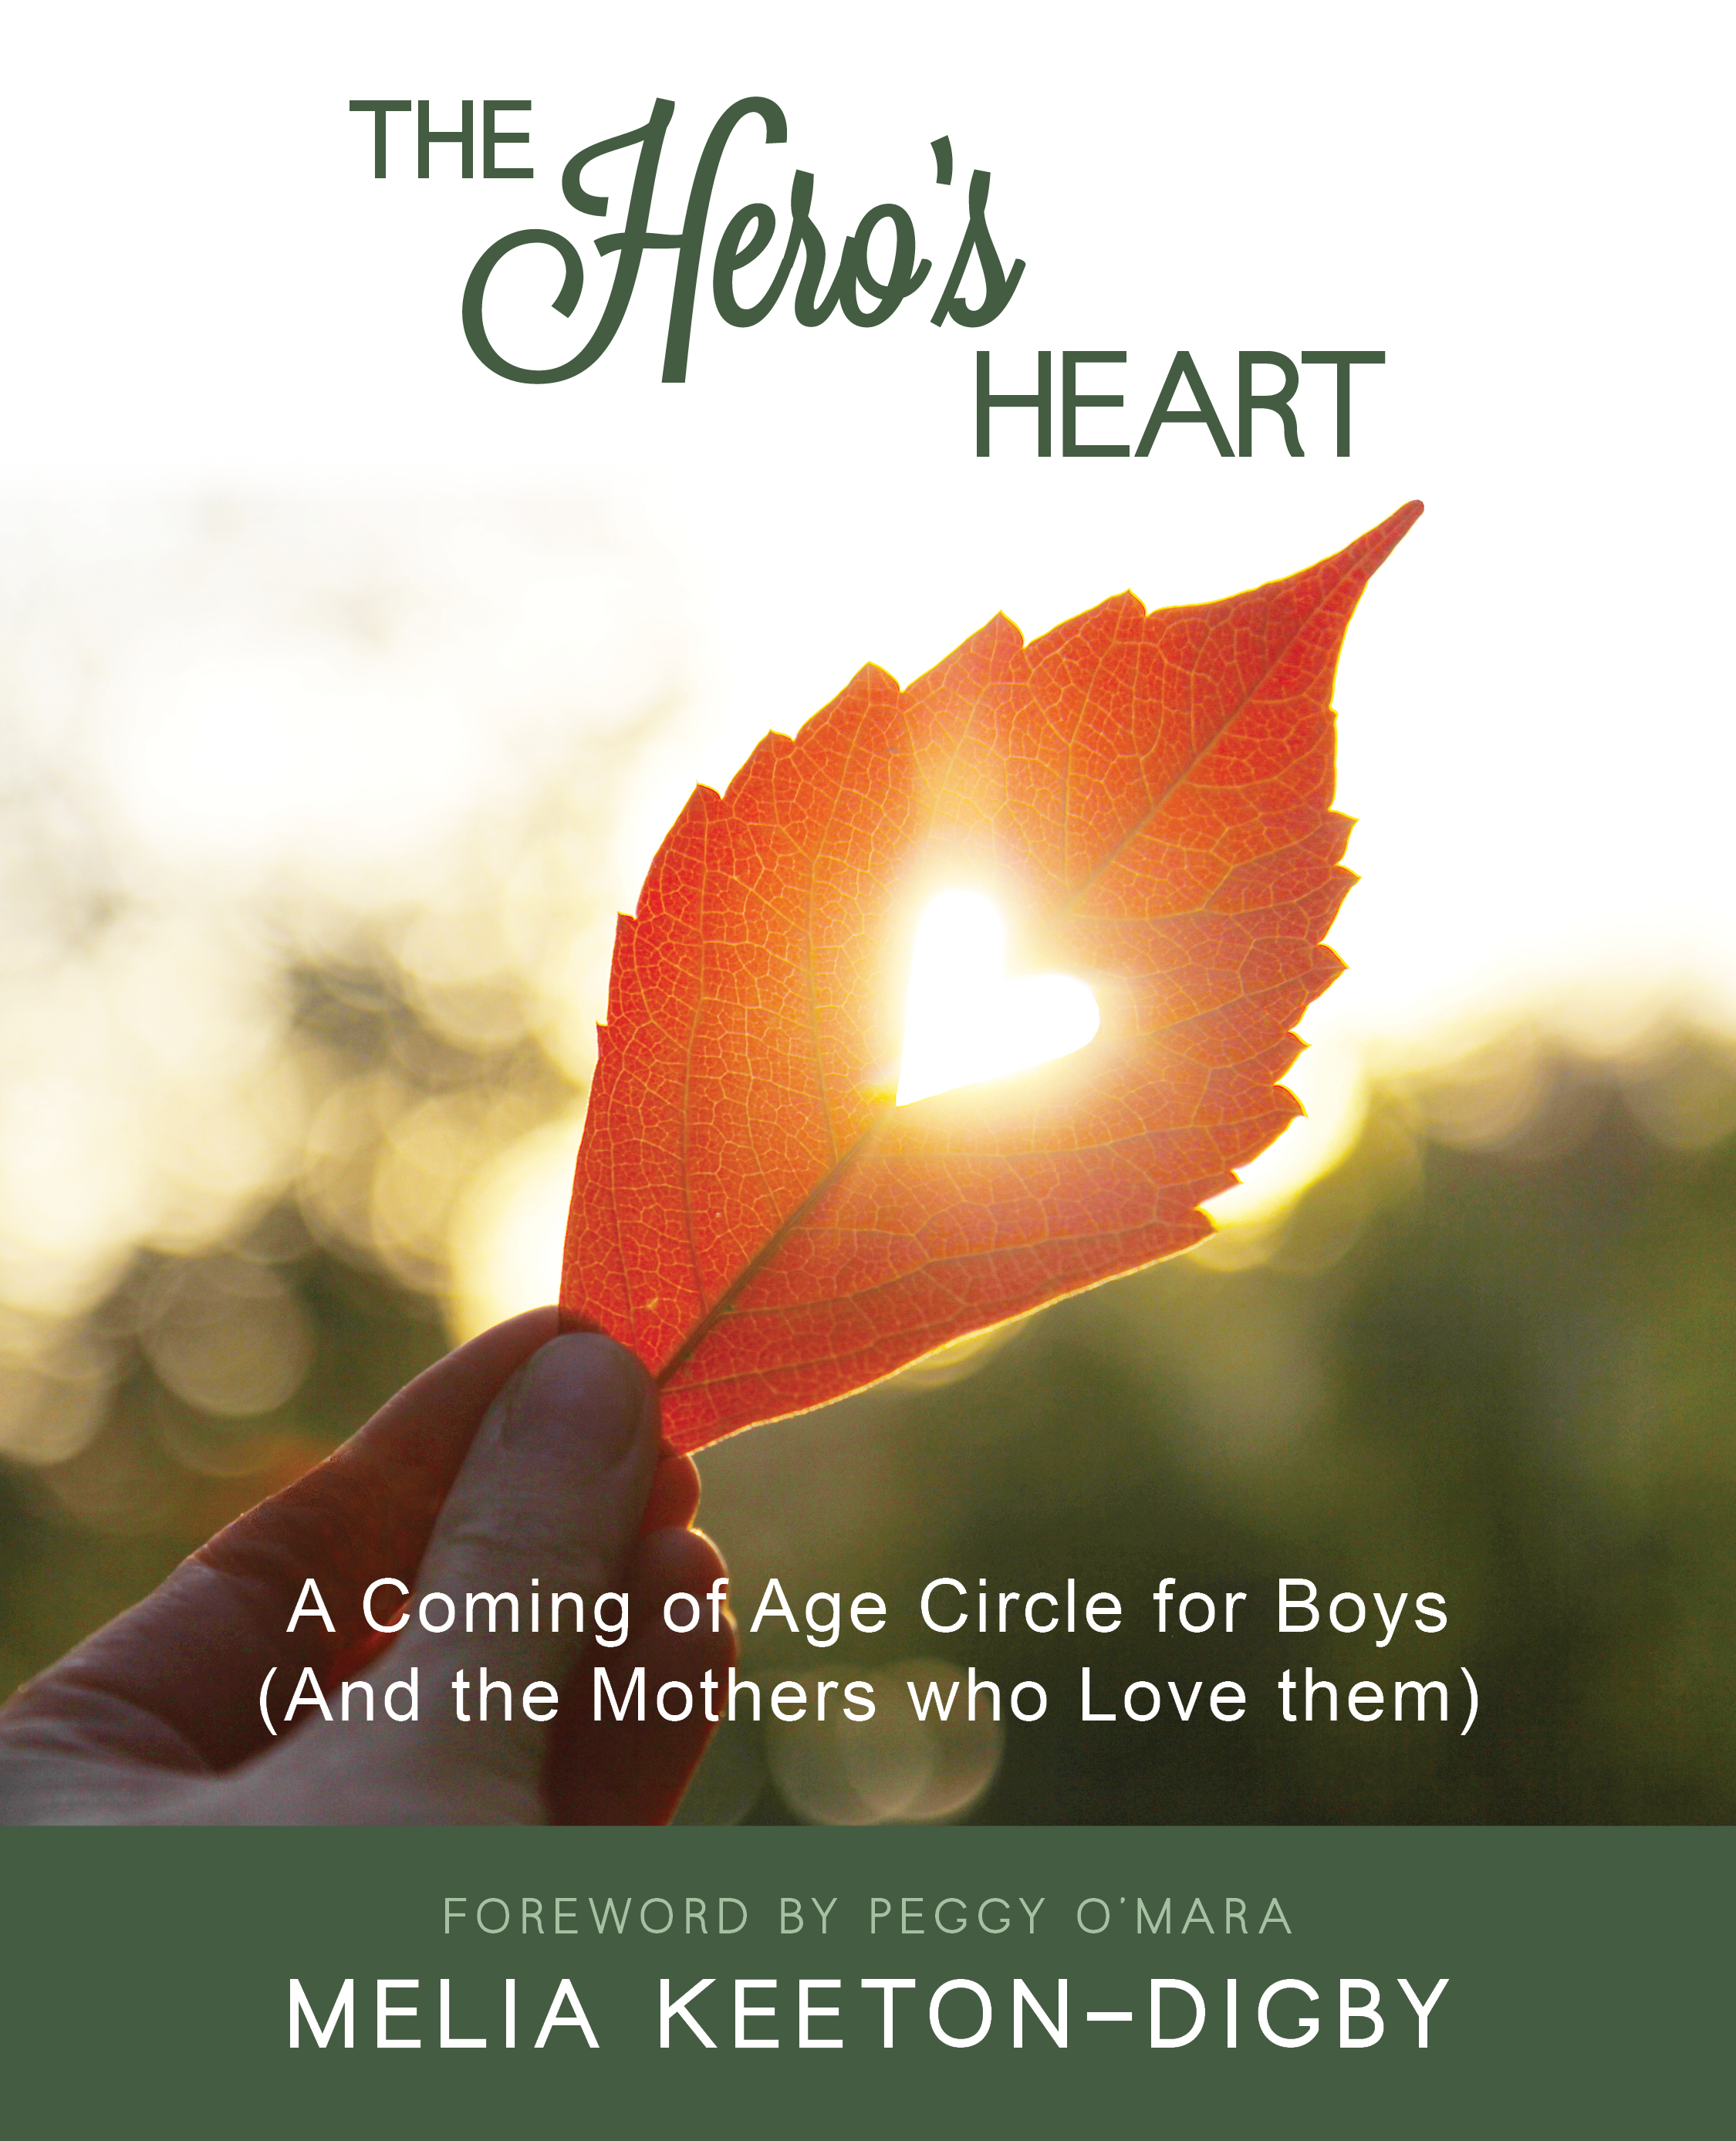 The Hero's Heart by Melia Keeton Digby, Womancraft Publishing